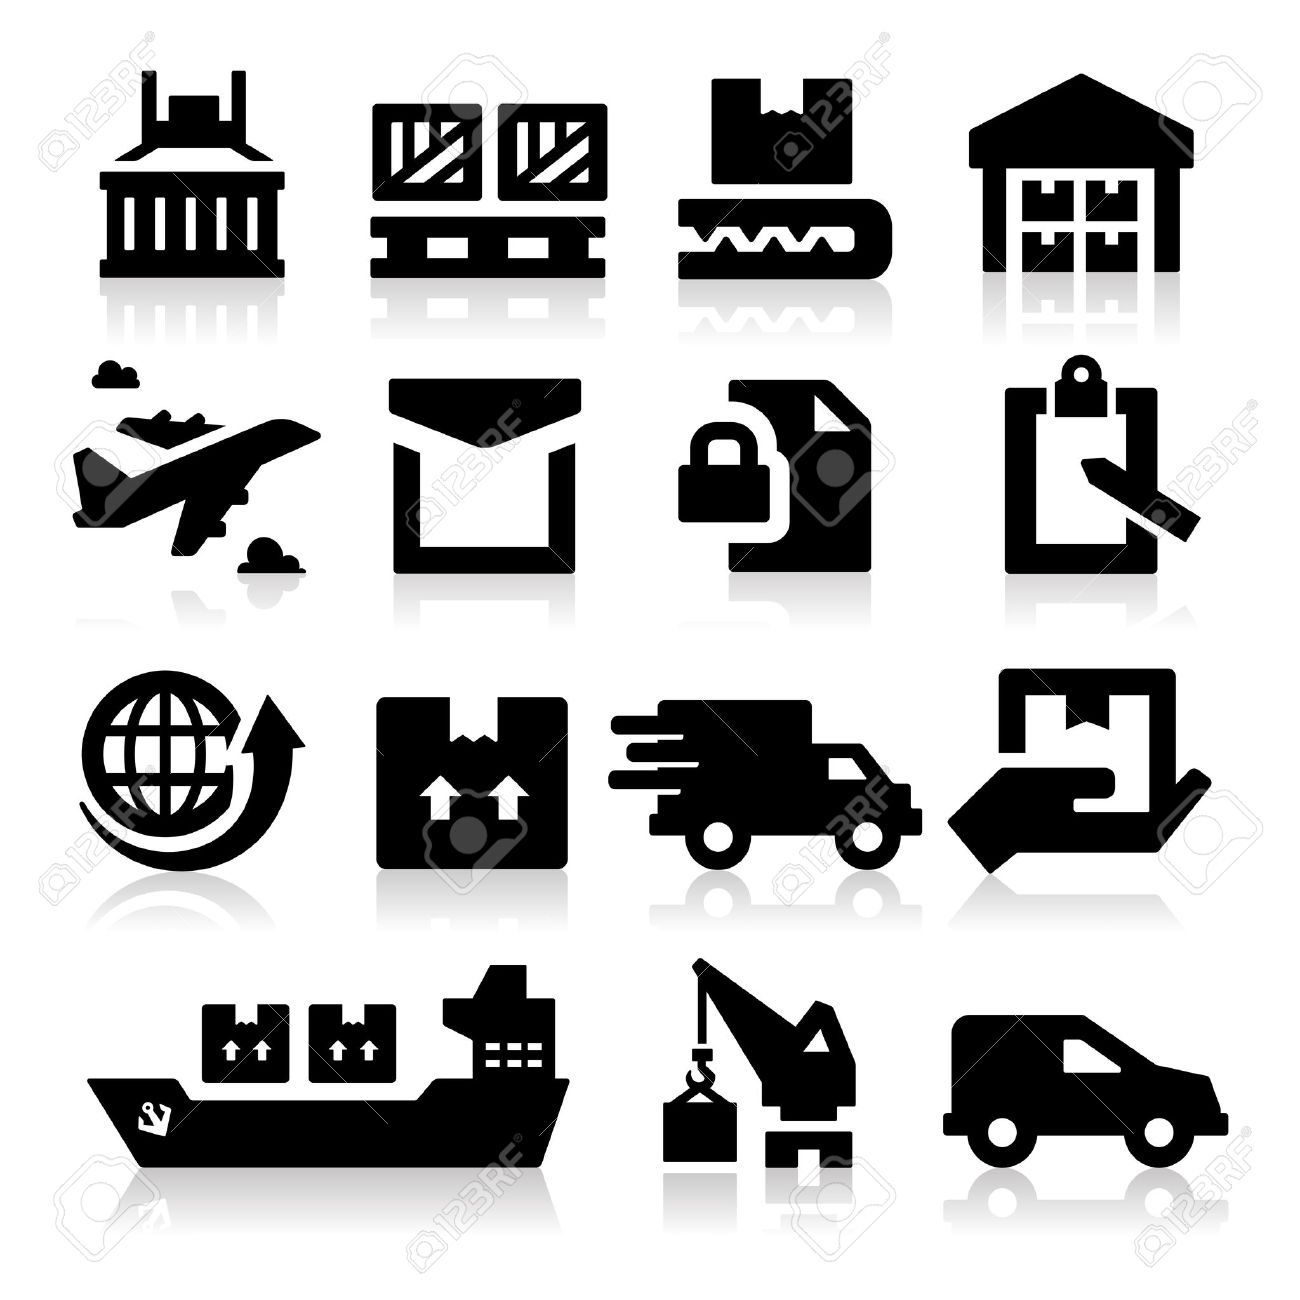 Shipping Icons Royalty Free Cliparts, Vectors, And Stock.